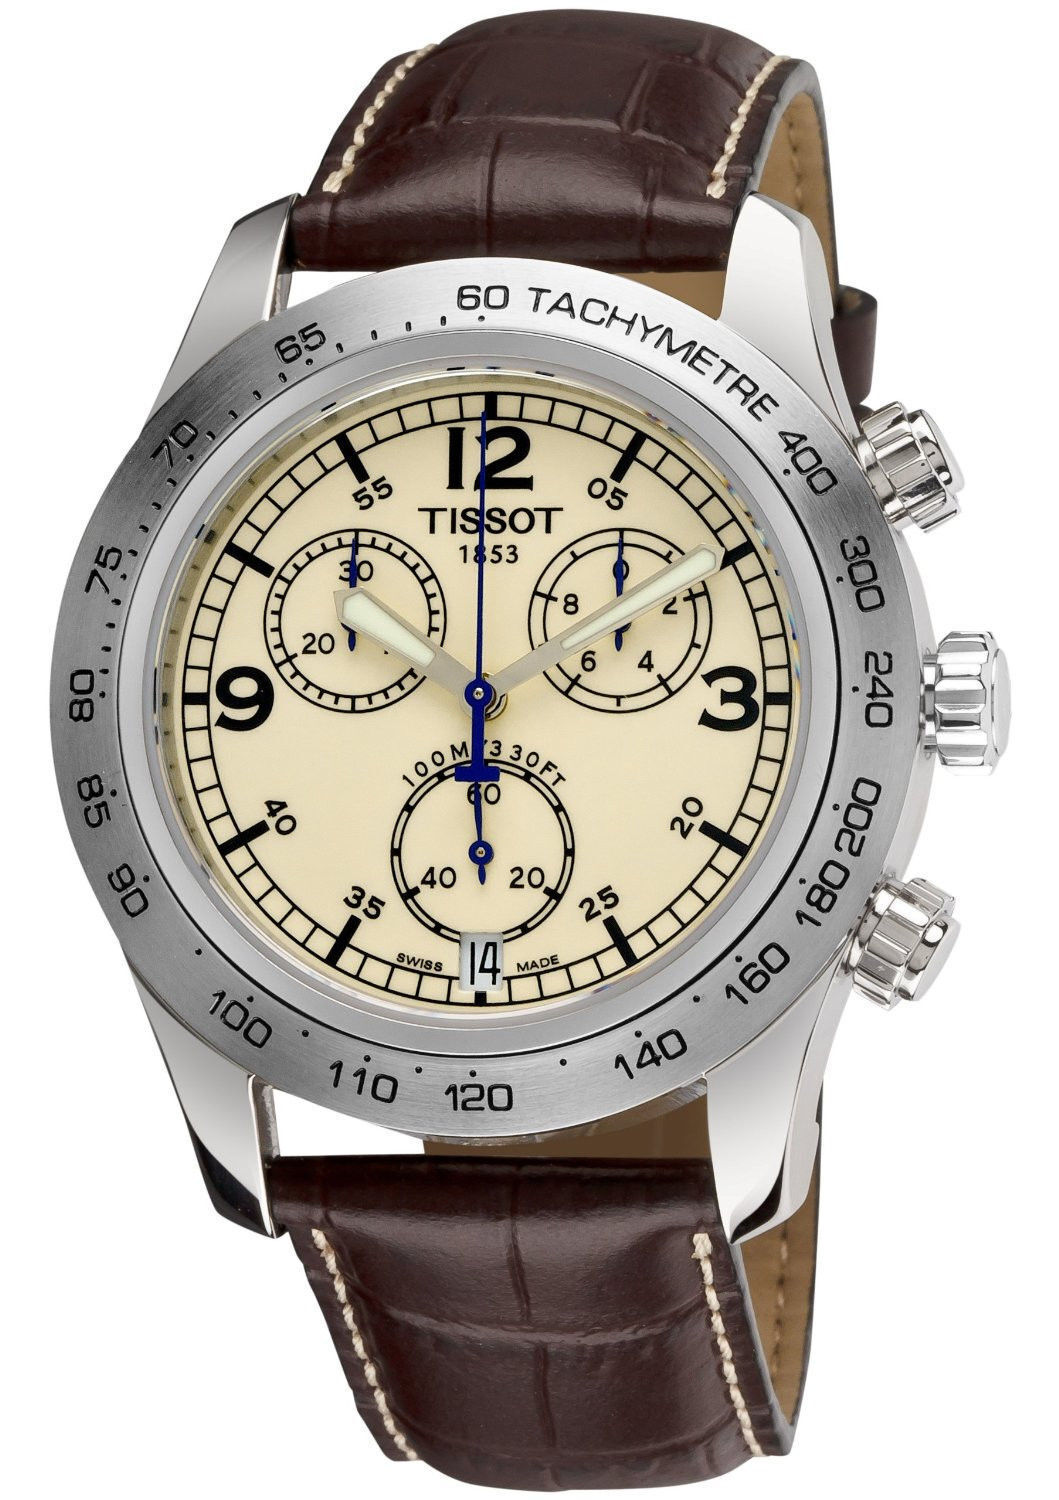 Top 10 Tissot Watches for Men